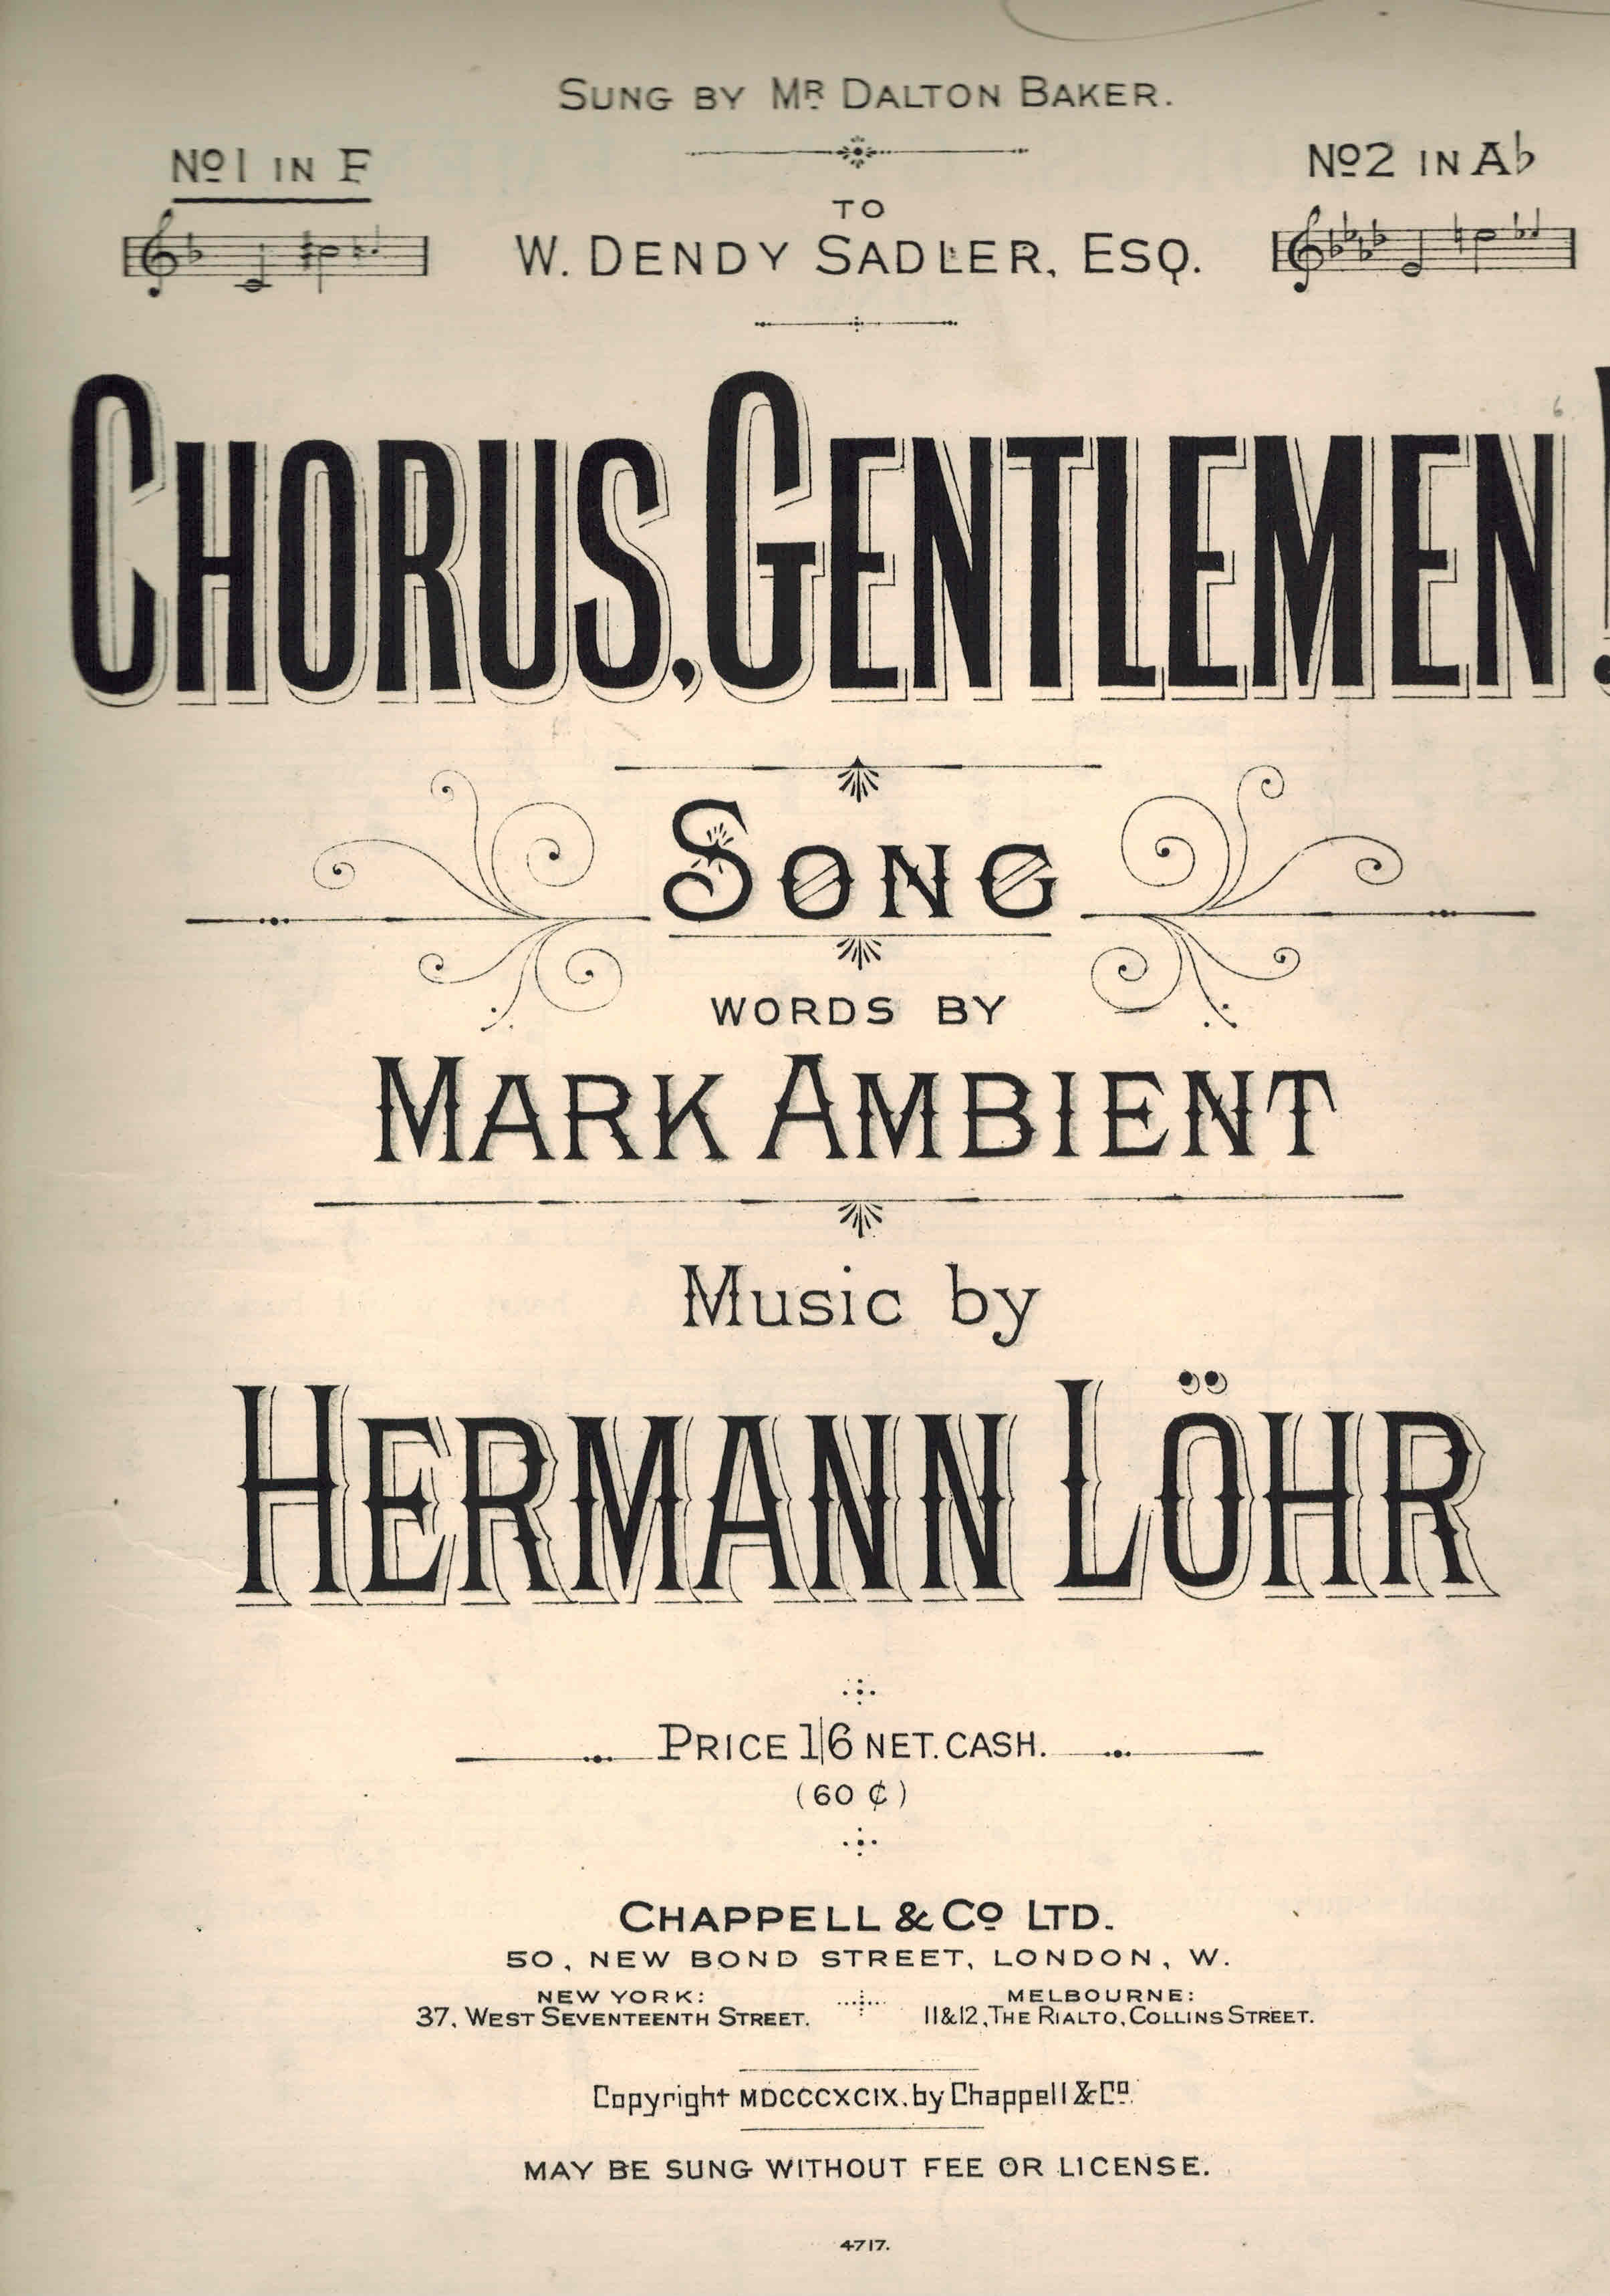 Image for Chorus Gentlemen ! Vintage Sheet Music as Sung By Mr Dalton Baker